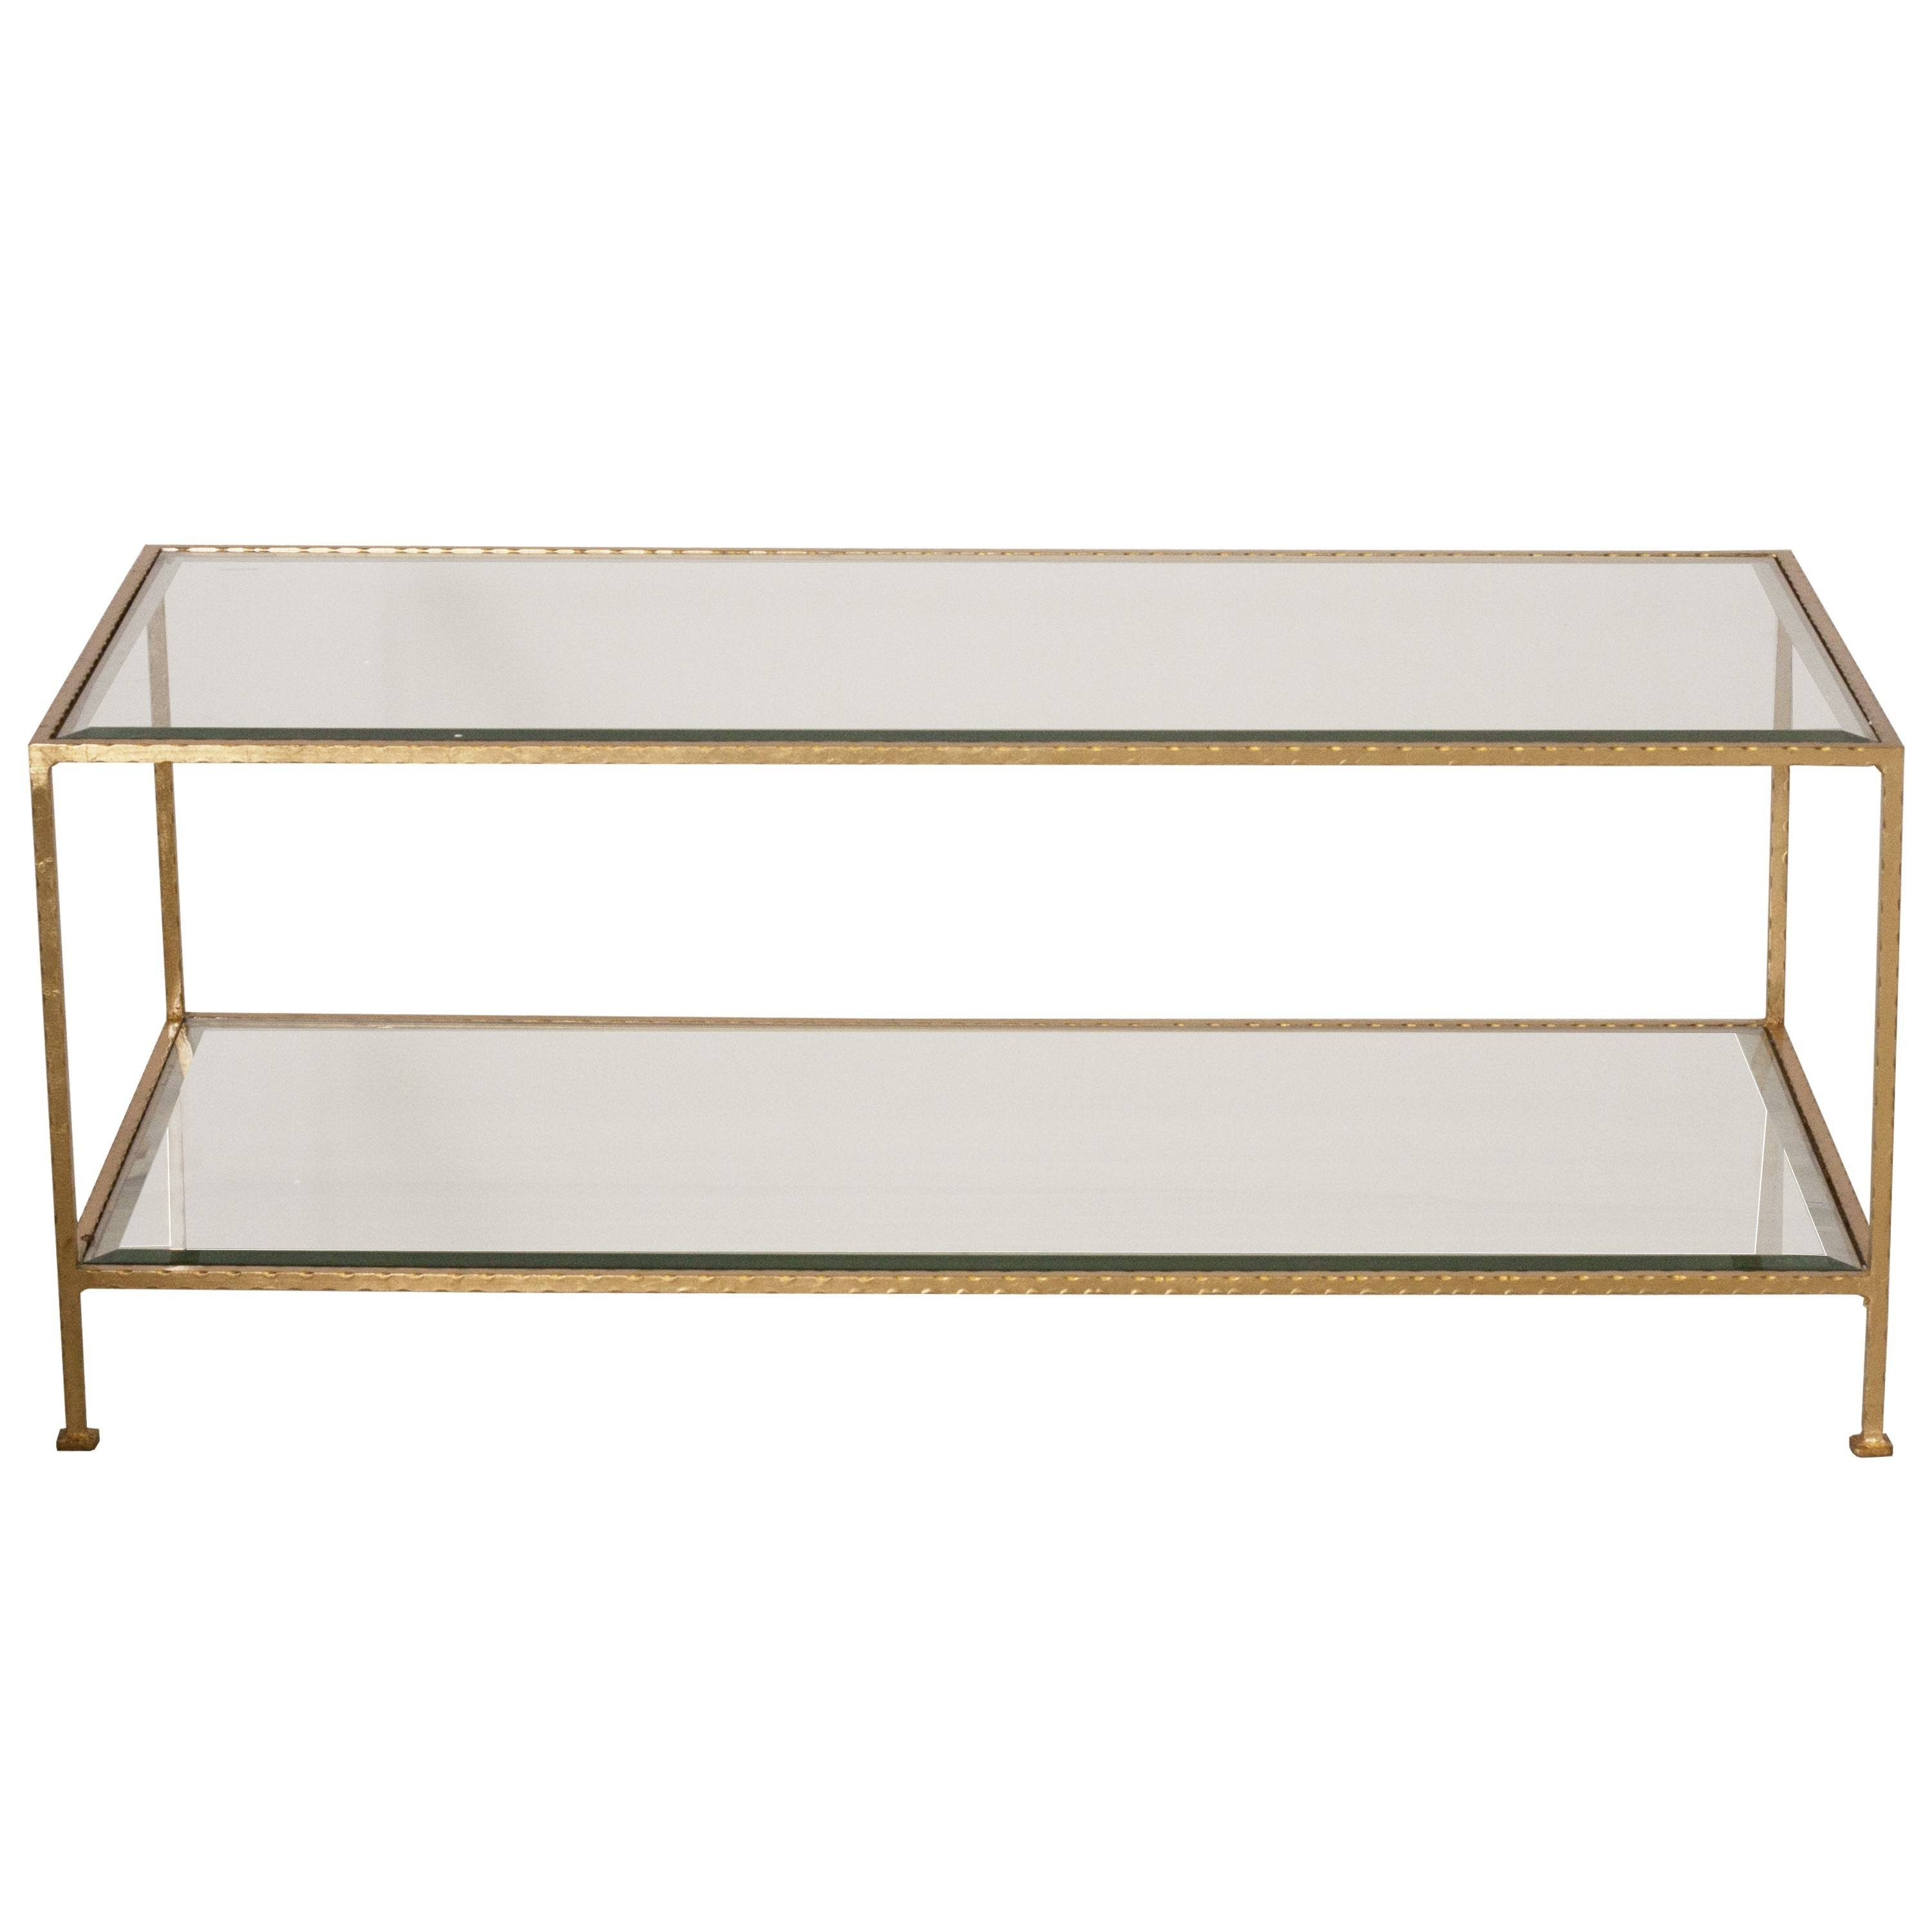 Furniture. Glass And Gold Coffee Table Ideas: Bronze Rectangle pertaining to Retro Glass Coffee Tables (Image 18 of 30)